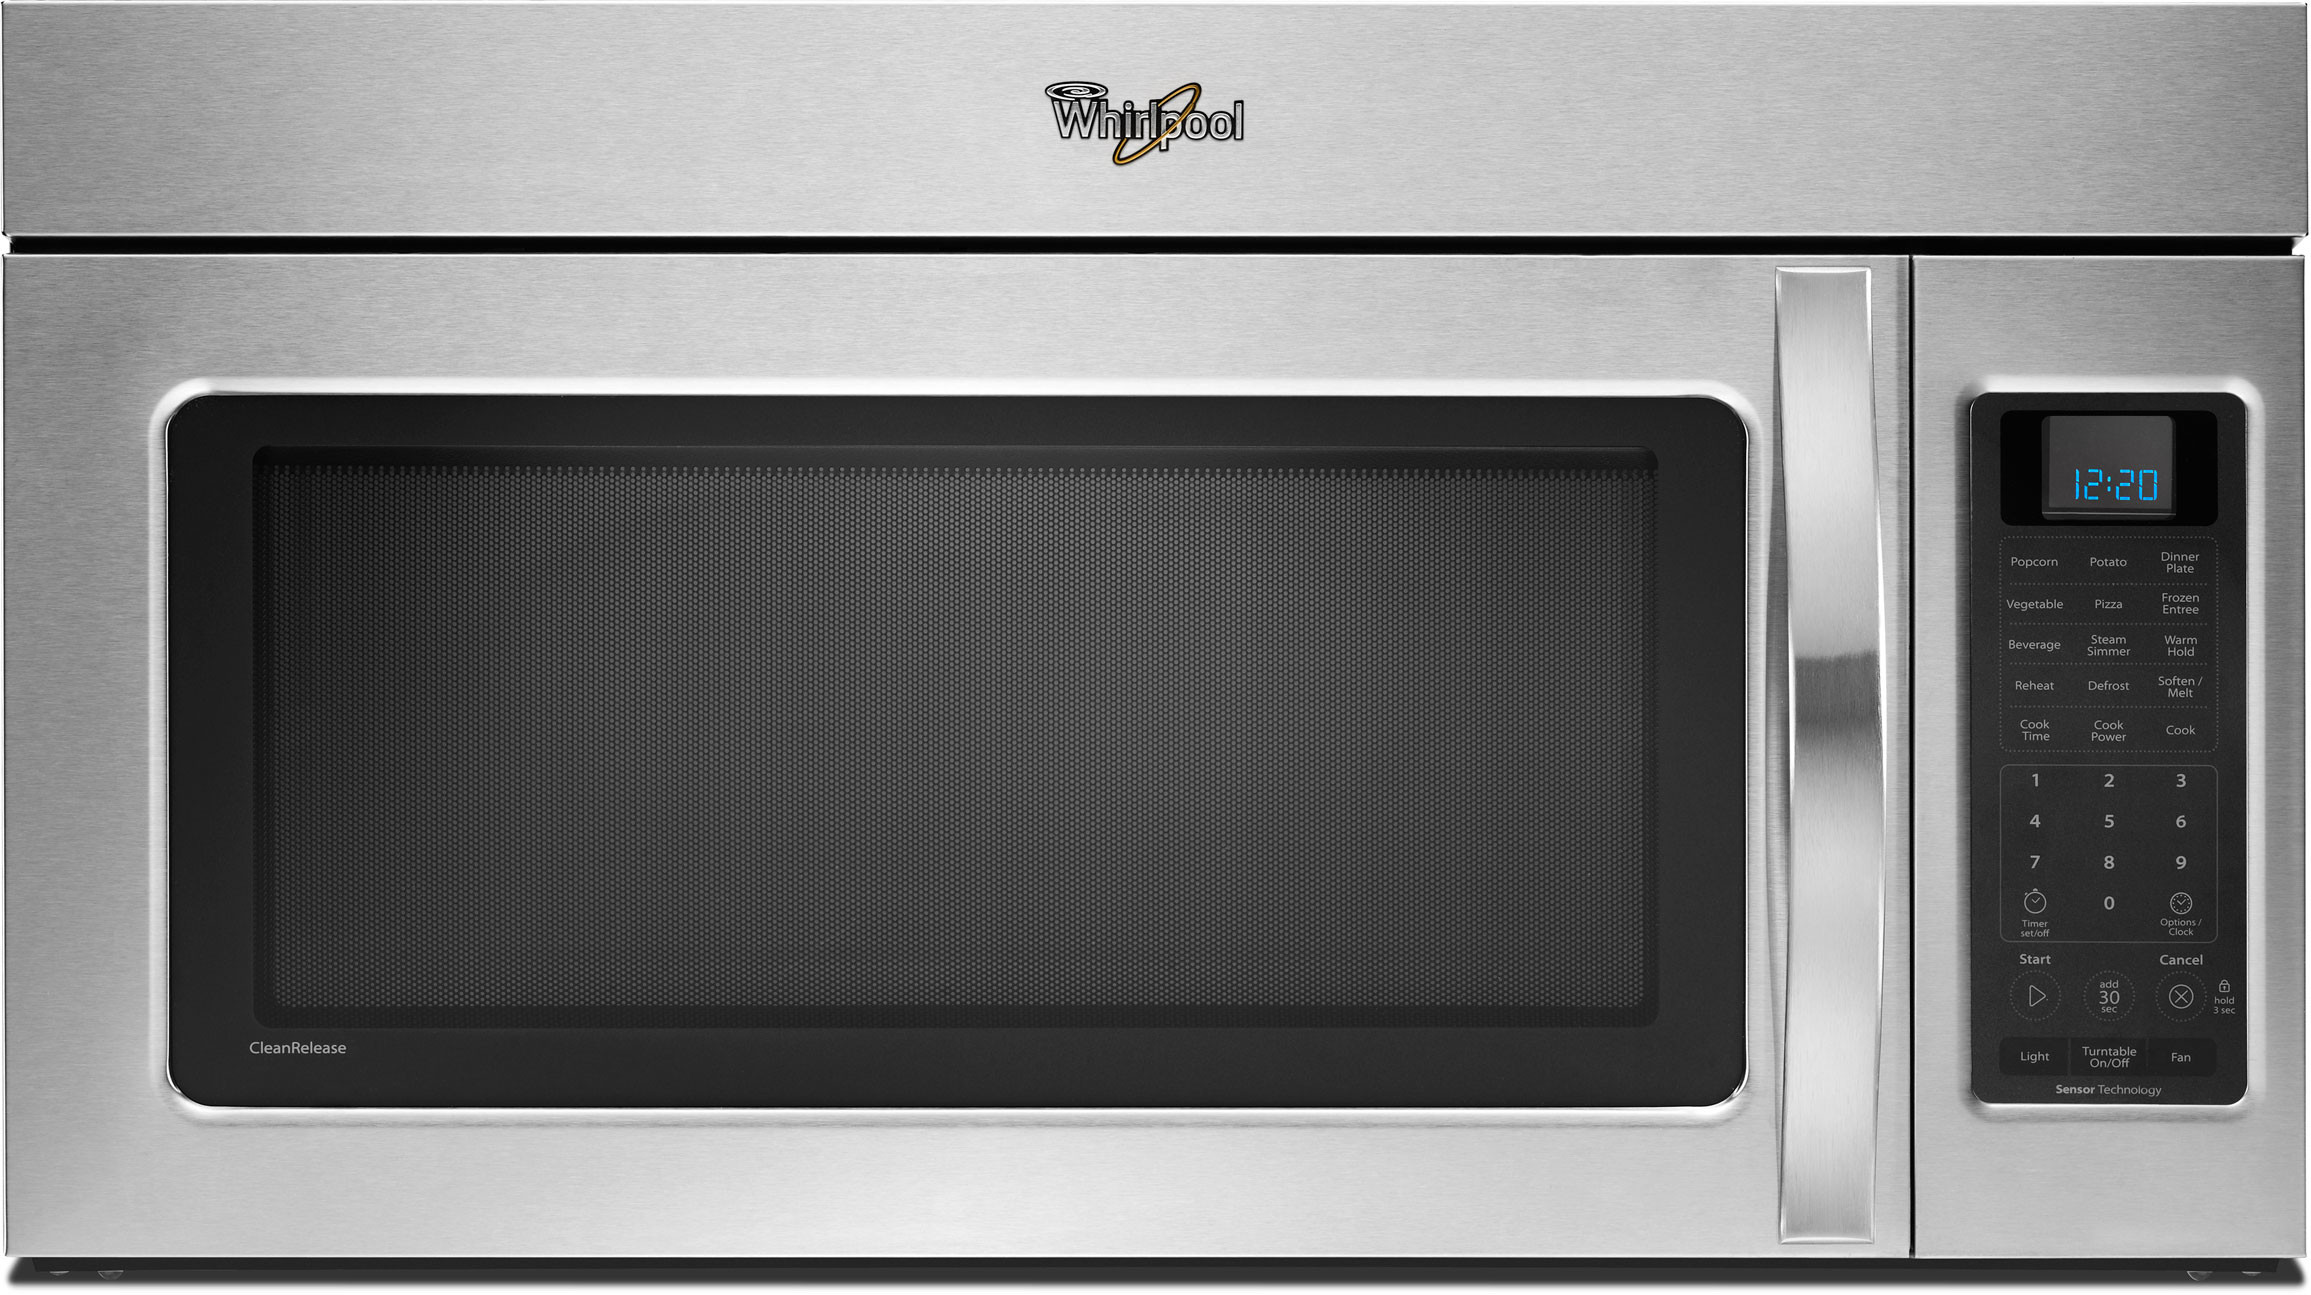 Whirlpool Wmh53520aw 2 0 Cu Ft Over The Range Microwave Oven With 400 Cfm Vent System 4 Speed